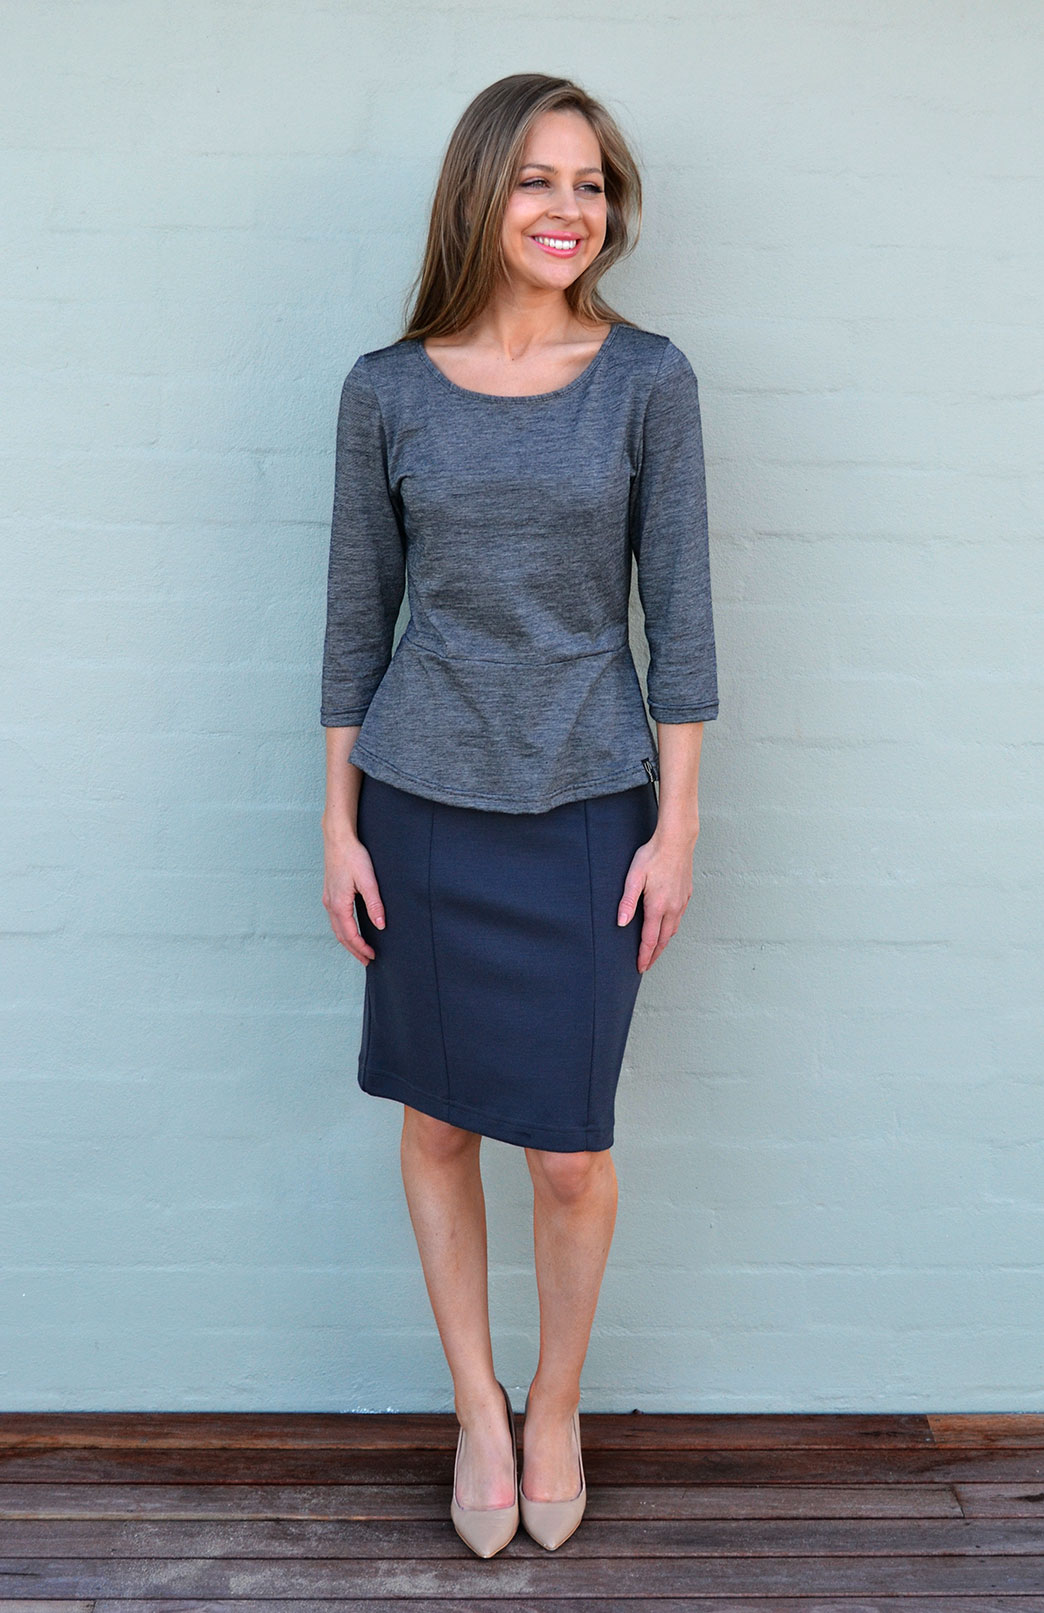 Straight Skirt - Women's Steel Grey Straight Office Skirt - Smitten Merino Tasmania Australia